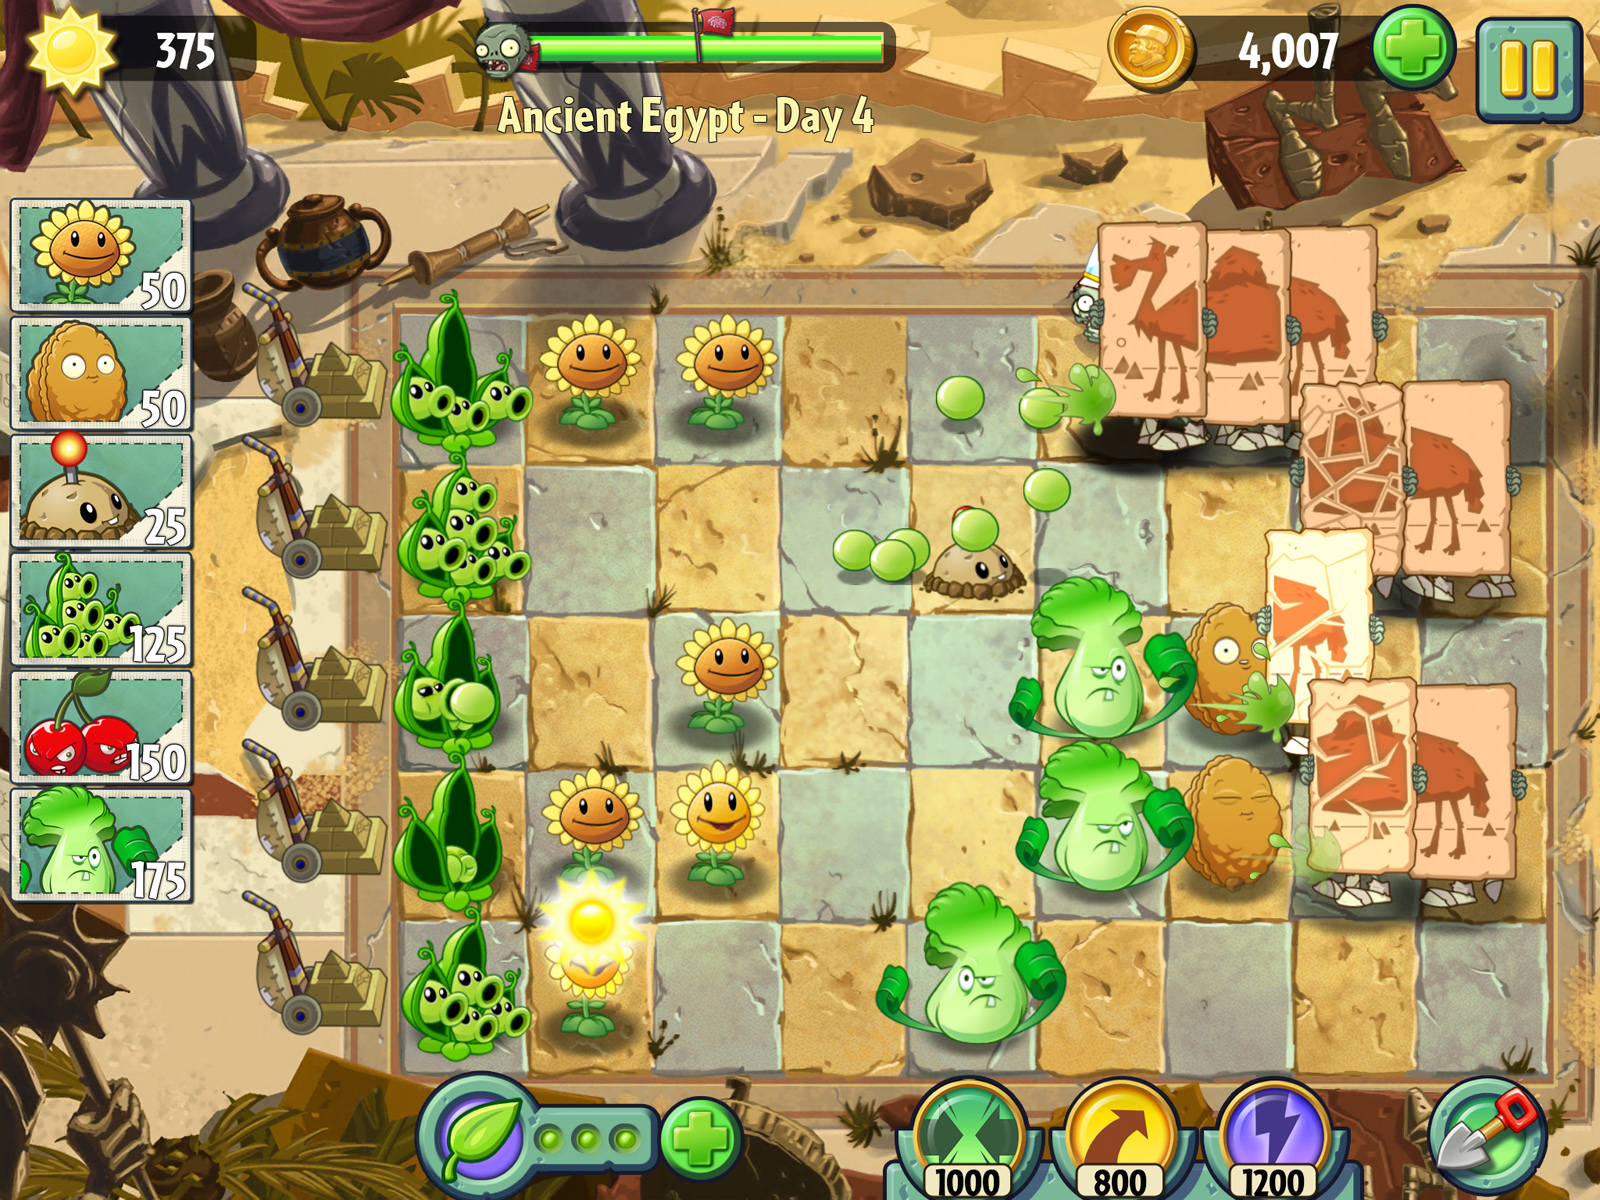 plants-vs-zombies-2-egypt-camels-peapods